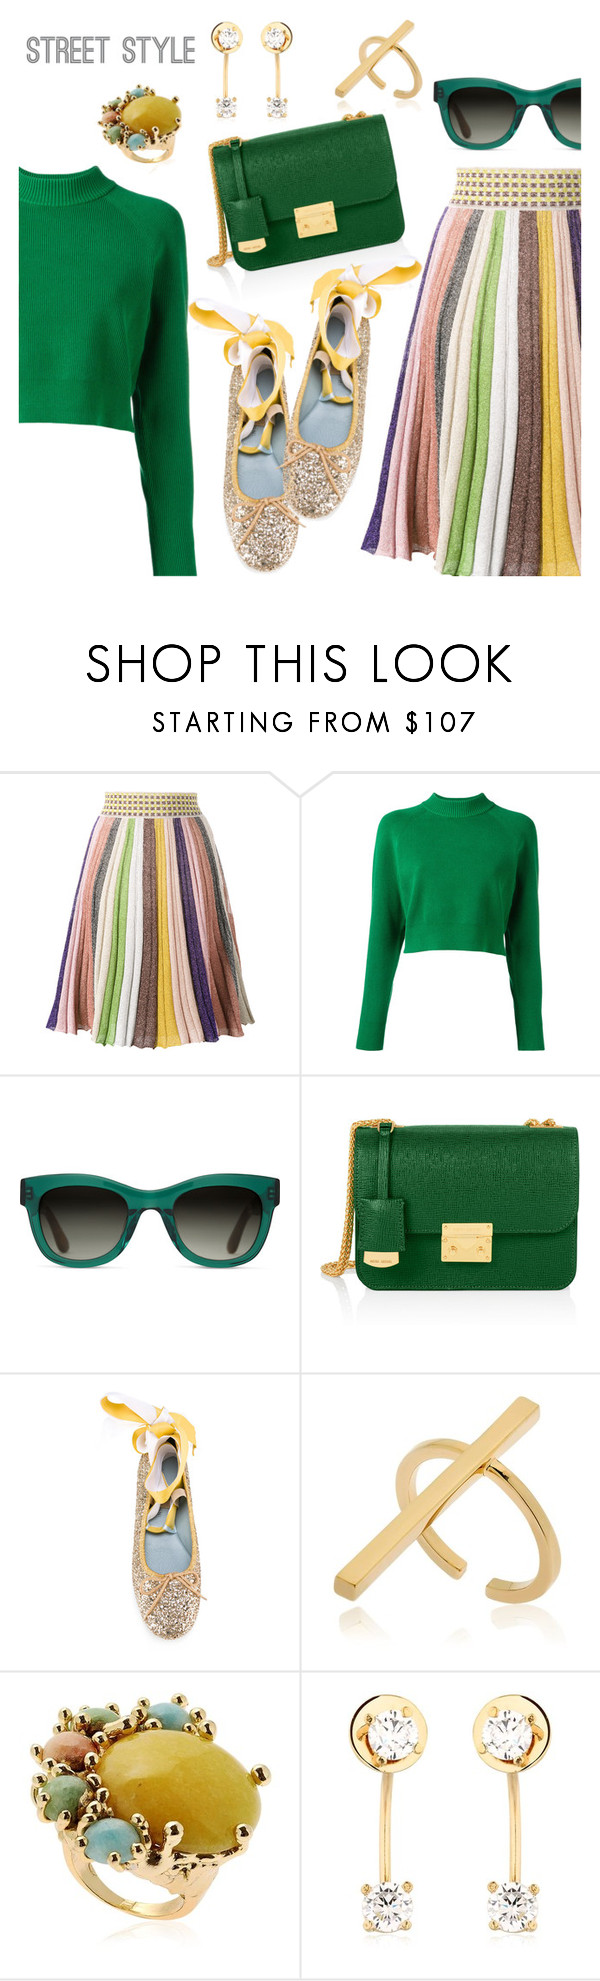 """Street Style"" by dressedbyrose ❤ liked on Polyvore featuring Missoni, DKNY, TOMS, Henri Bendel, Chiara Ferragni, Schield Collection, Rosantica, Maria Francesca Pepe, StreetStyle and polyvoreeditorial"